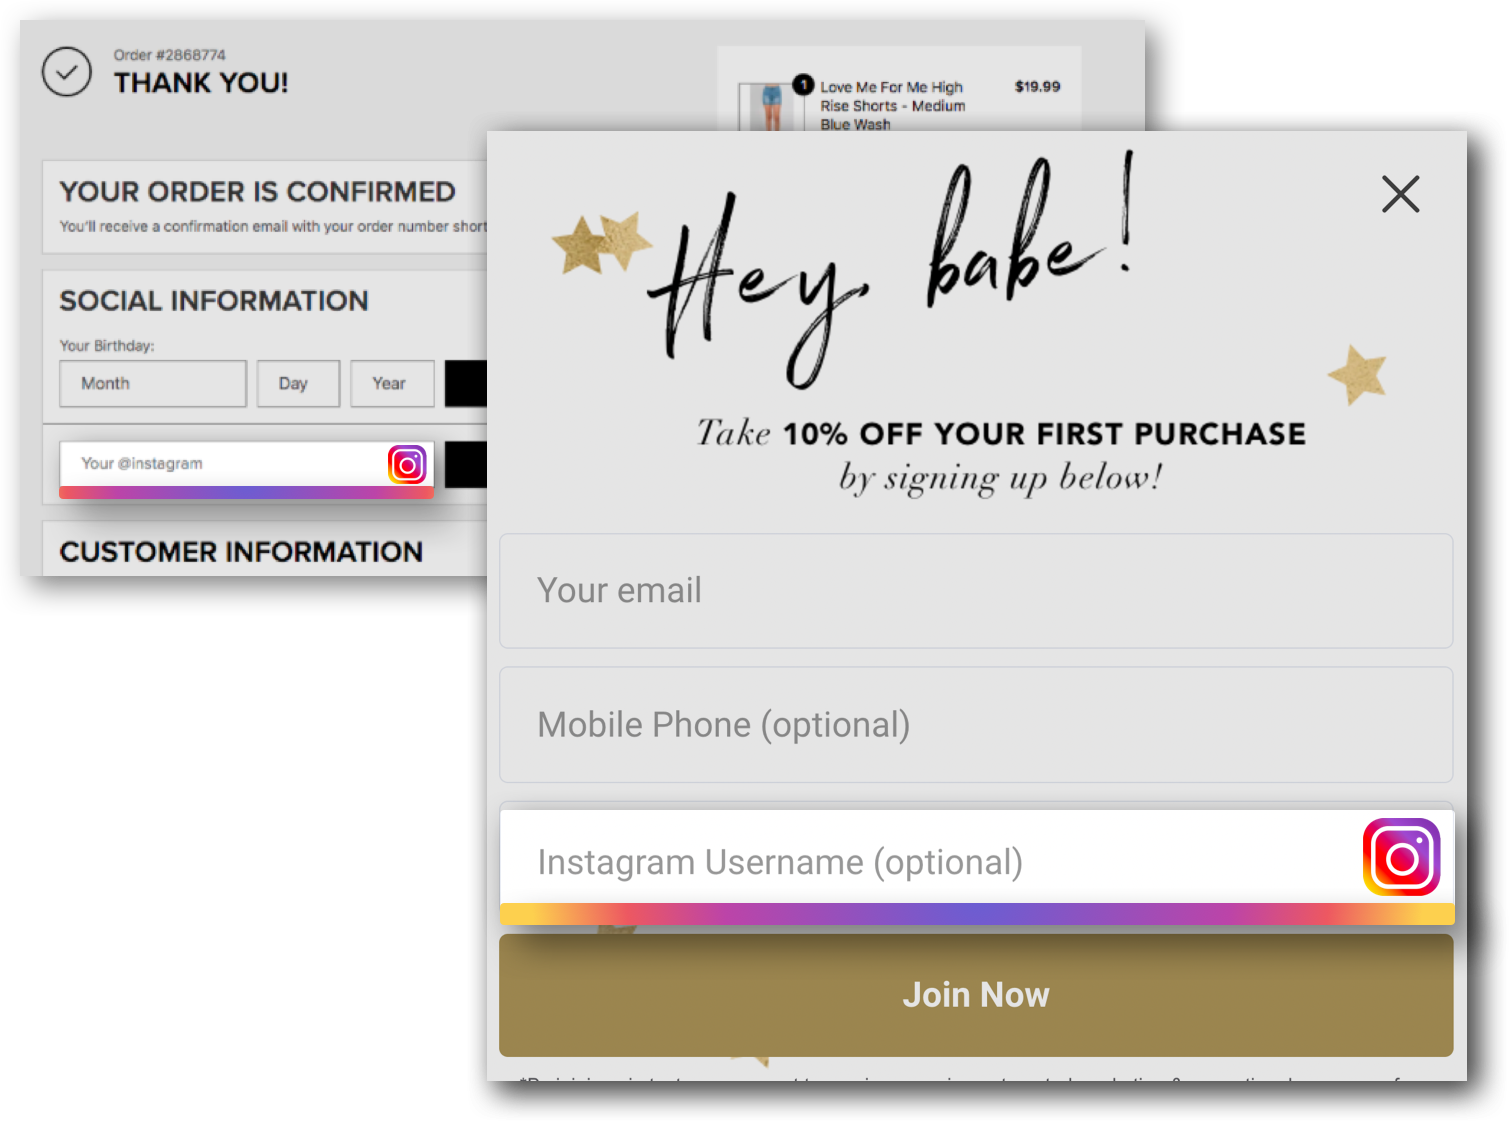 Gatsby instagram handle fields integrated into popups